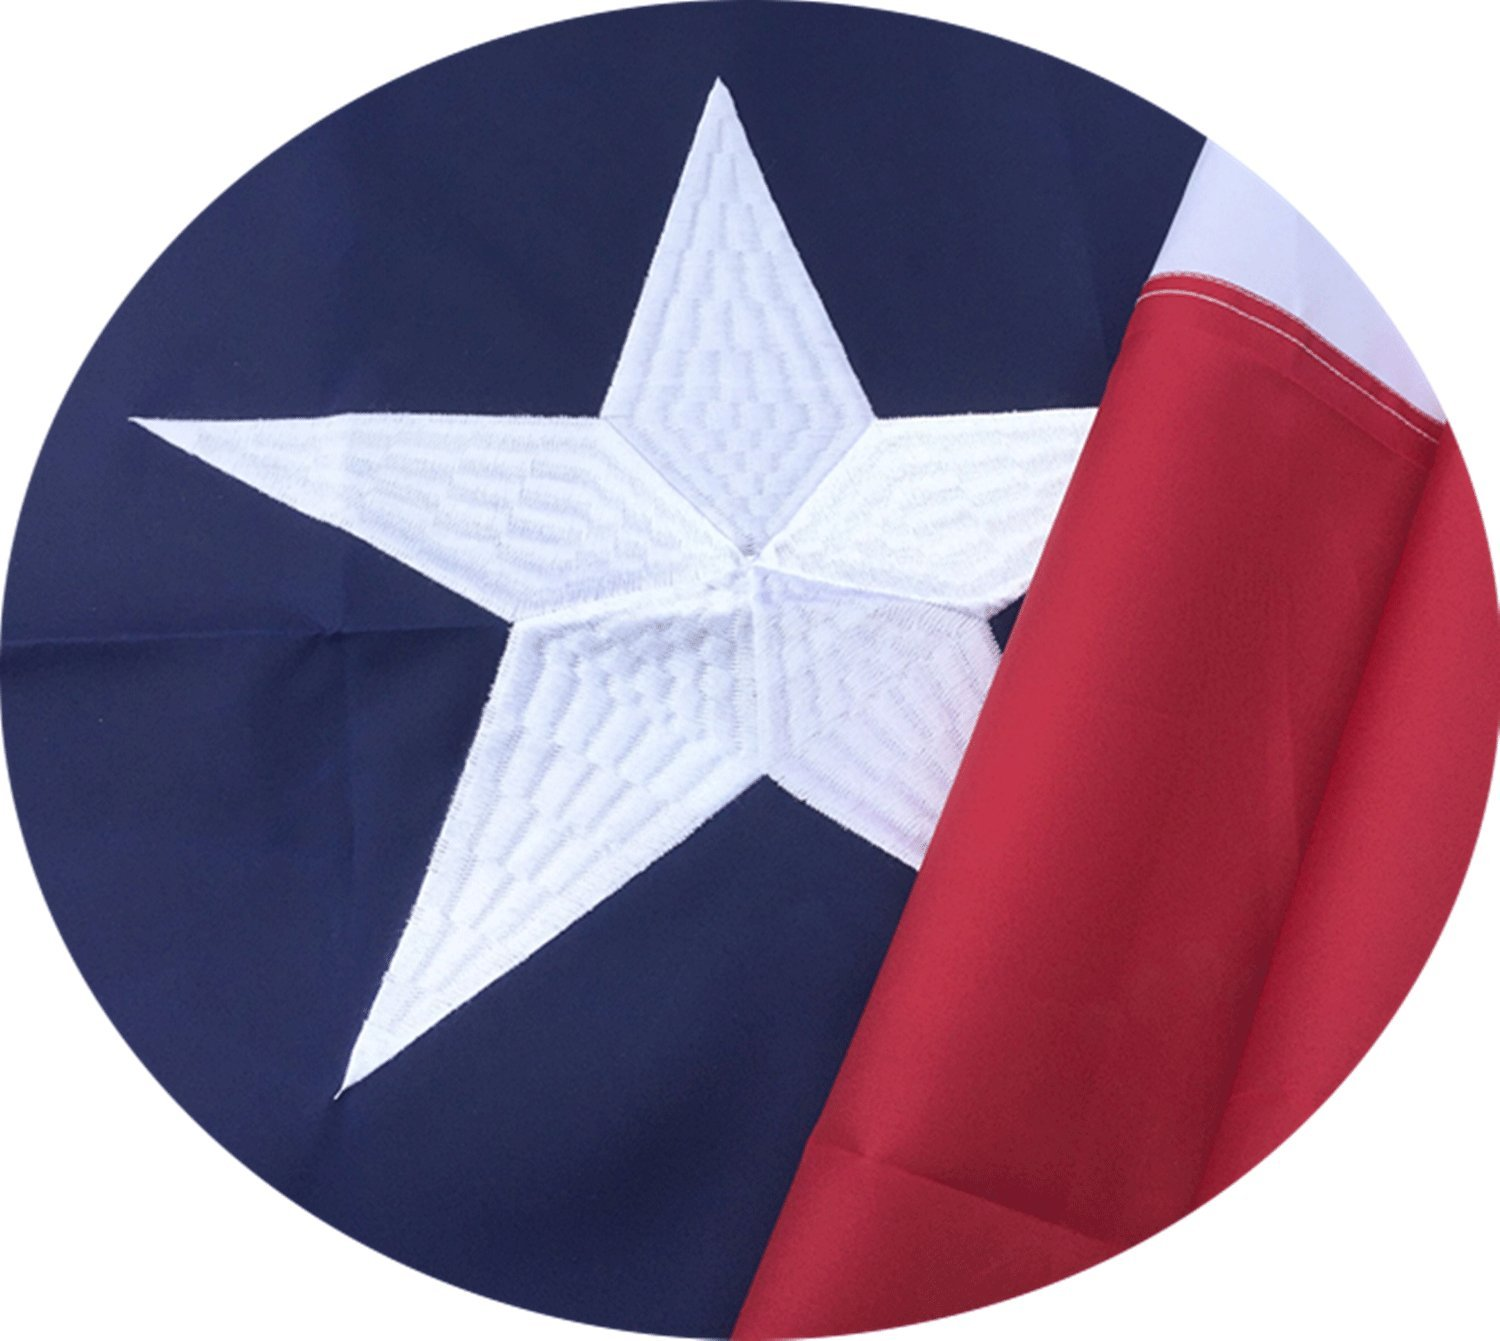 Texas State Flag 3x5 Ft with Embroidered Stars, Sewn Stripes and Long Lasting Nylon, UV Protected, Best 3 by 5 USA FlagsTexas, Best Texas Flag